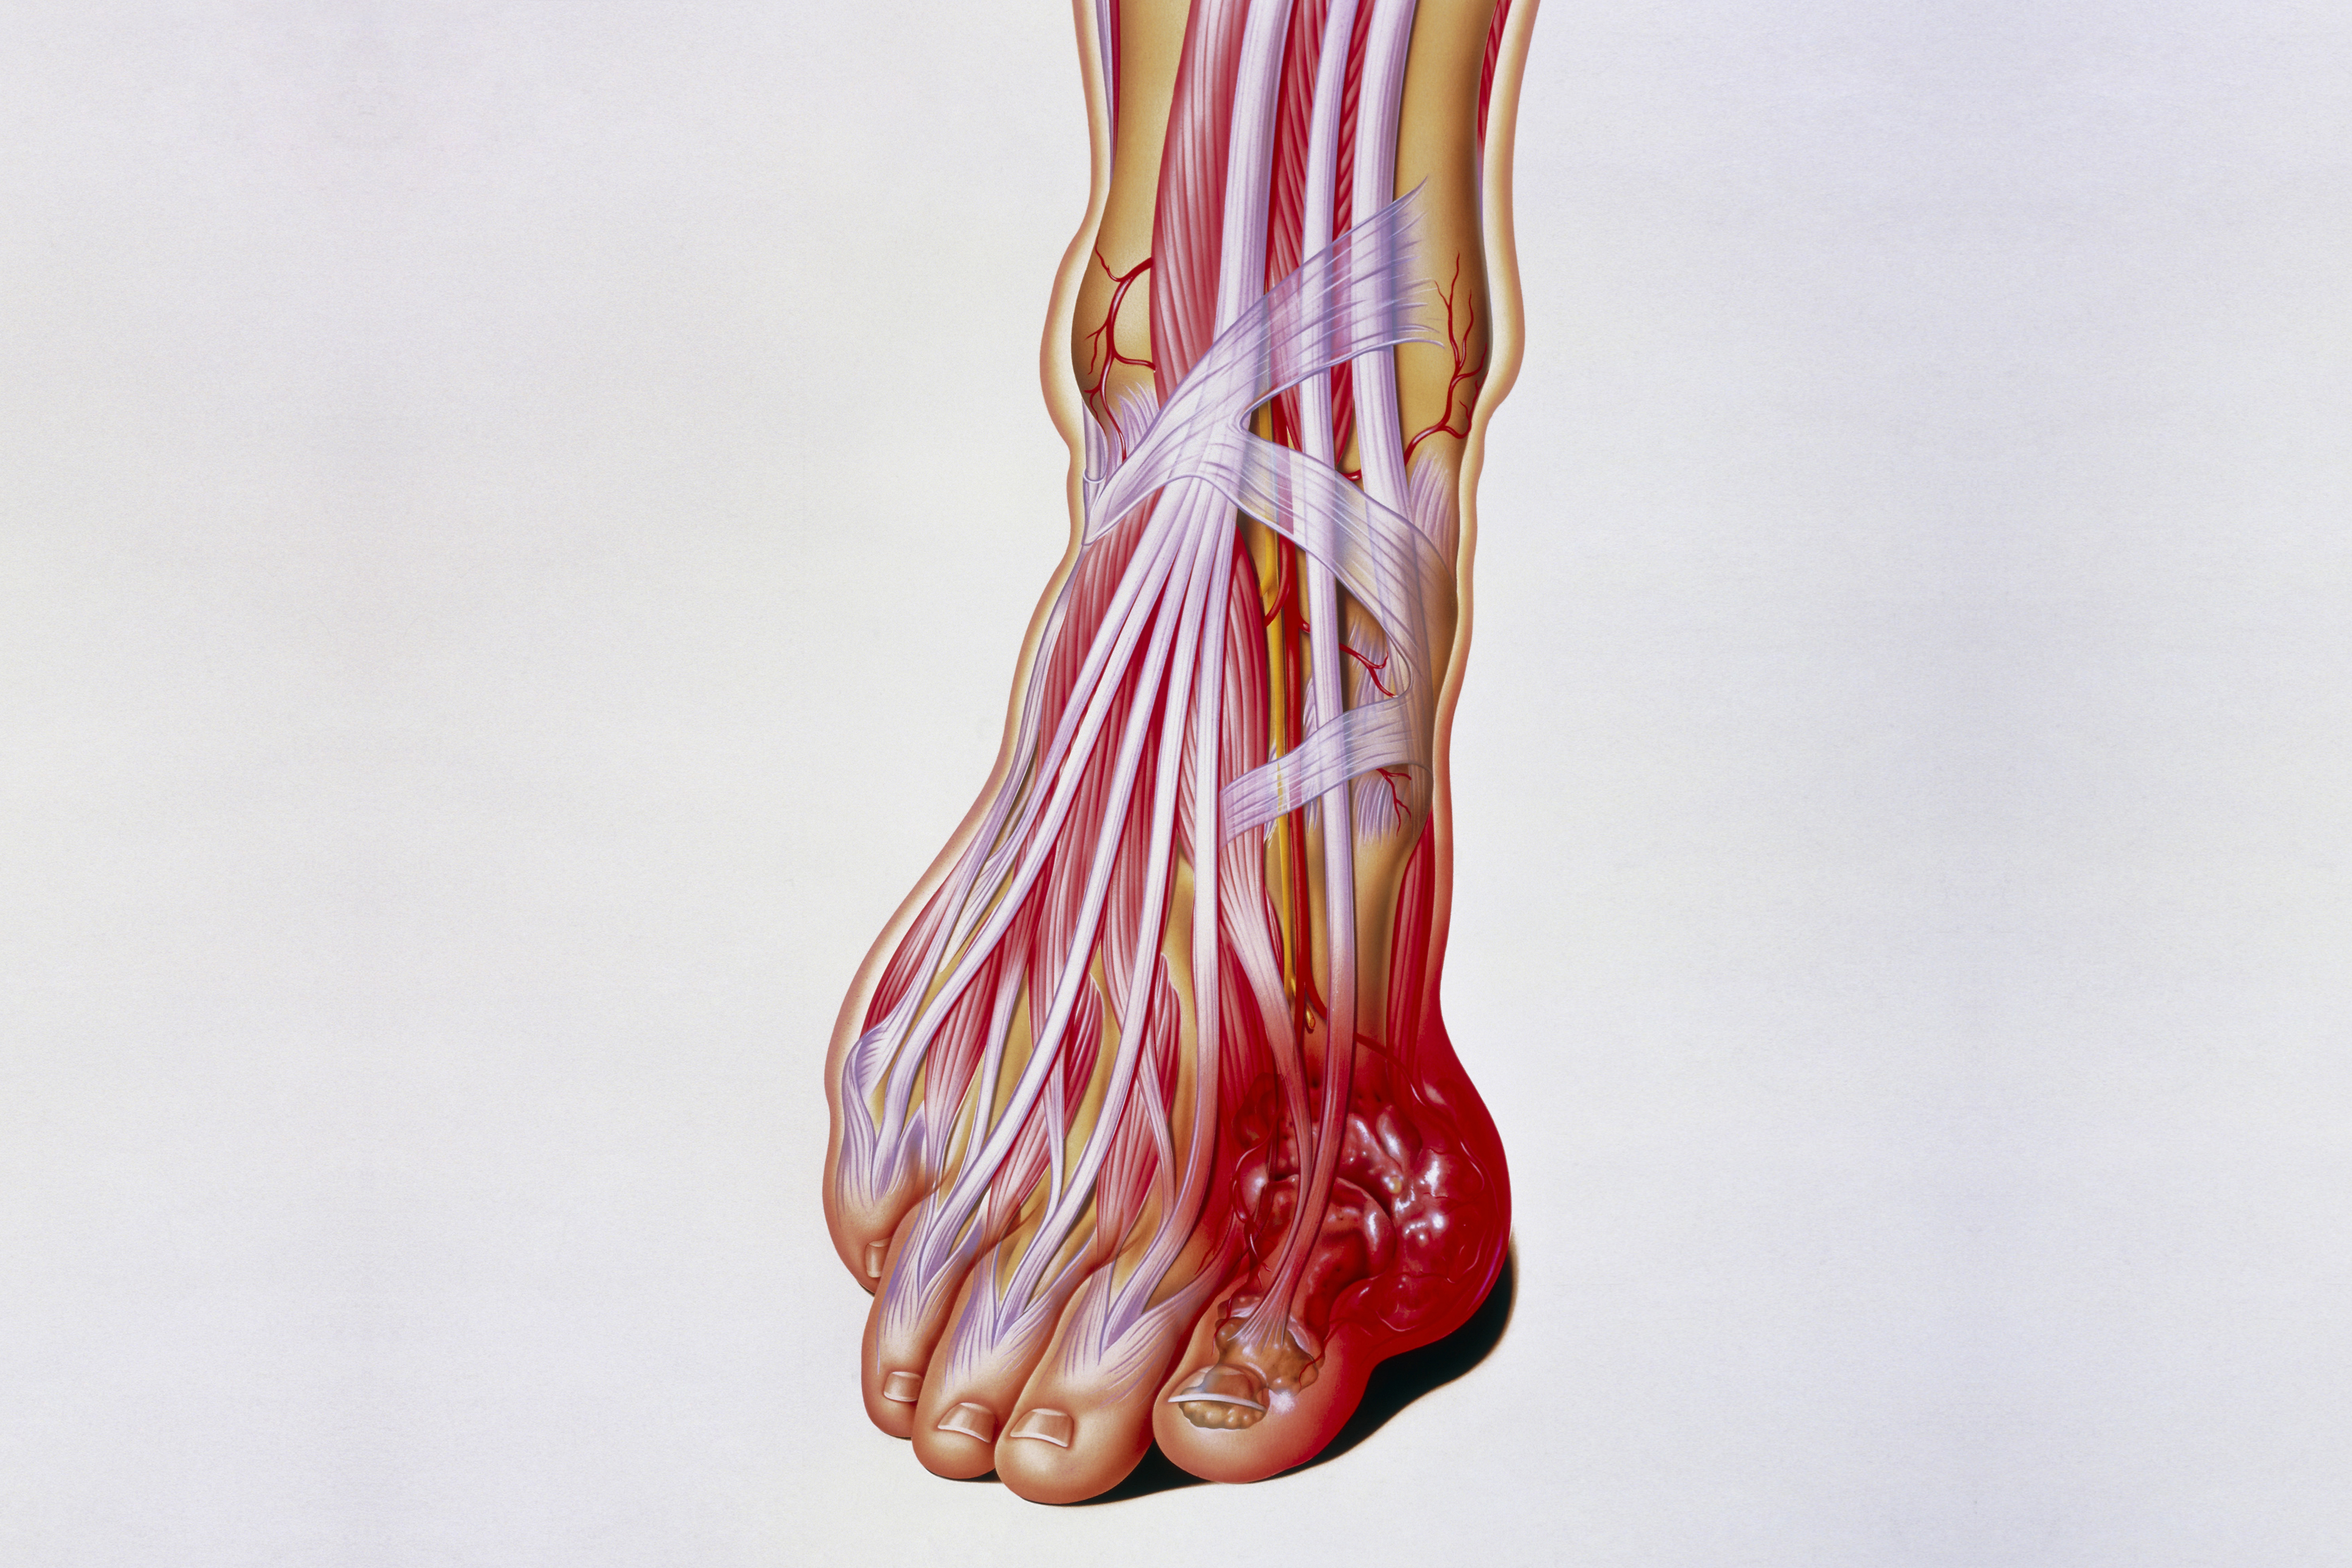 Major Cardiovascular Study Of Gout Patients Has Unexpected Finding Uconn Today